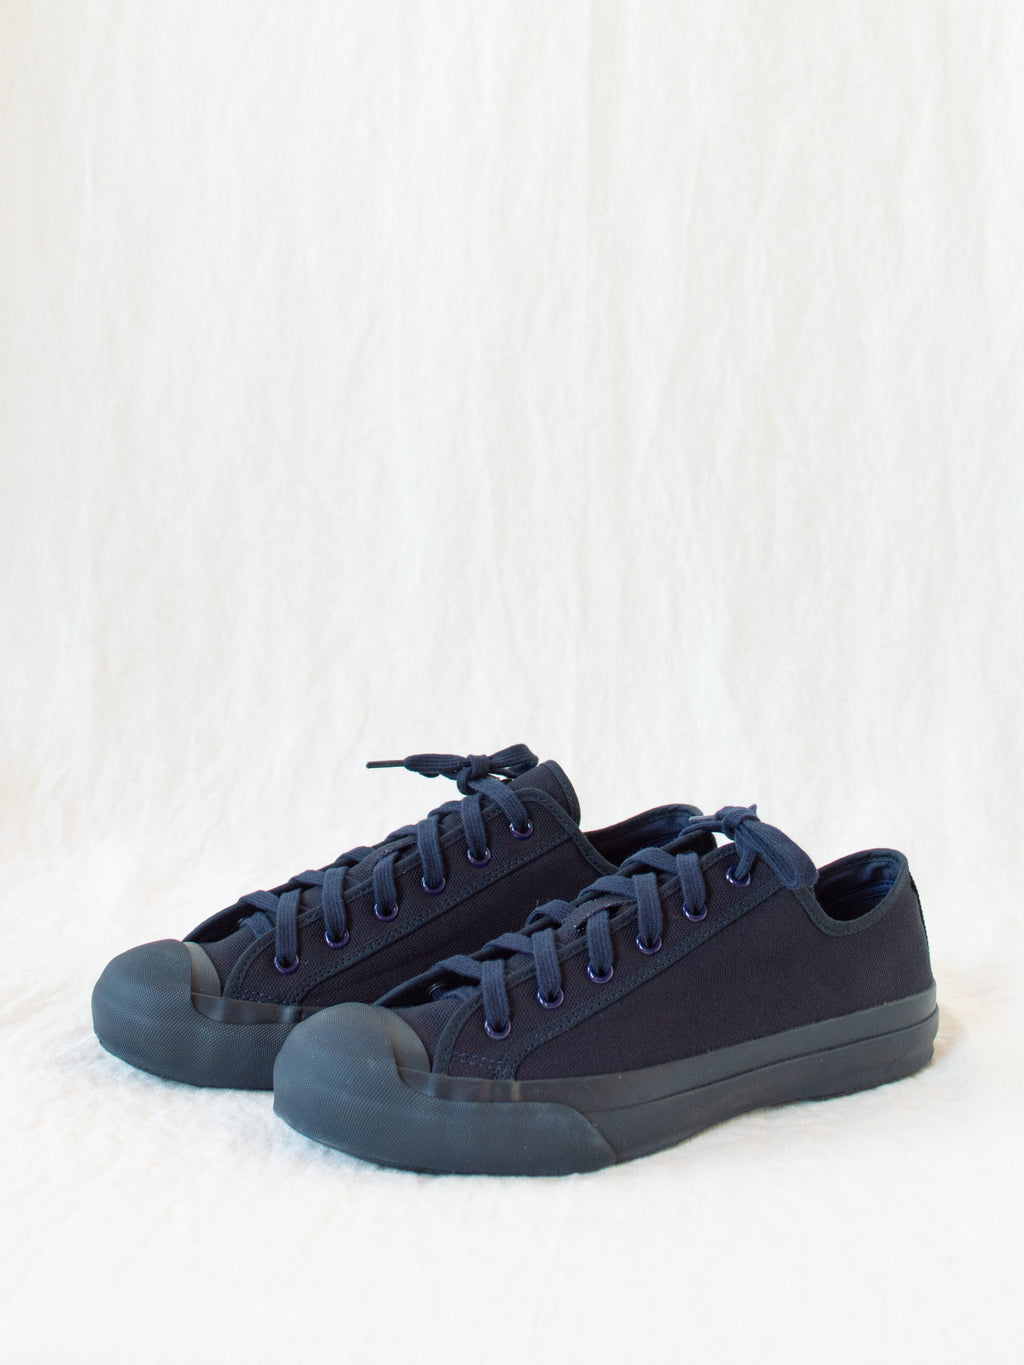 Moonstar x Studio Nicholson - Dark Navy (Men's)